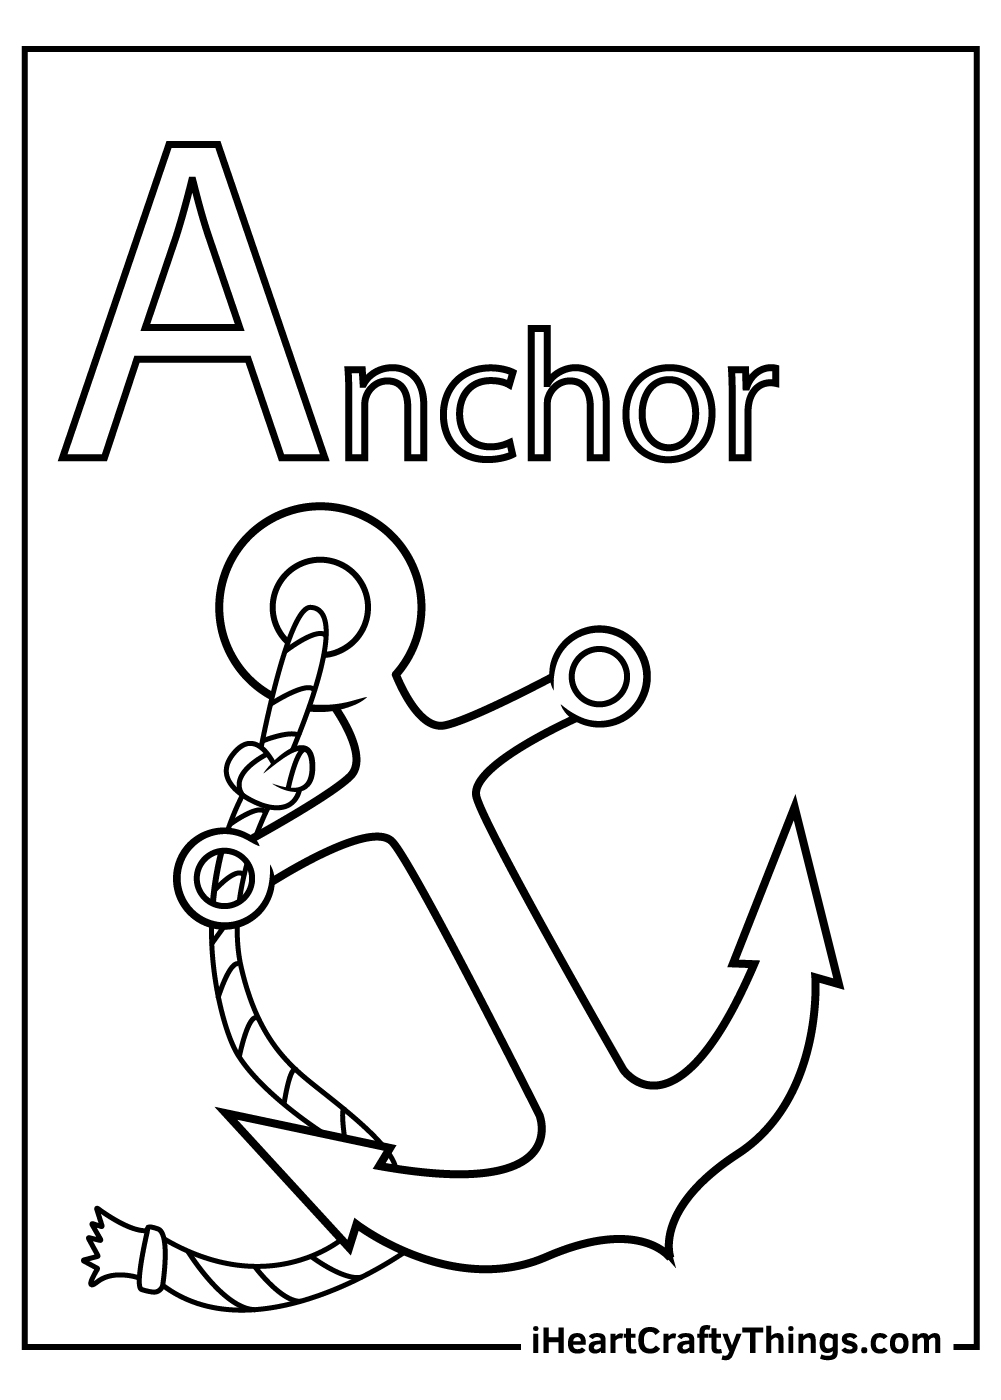 a is for anchor letter a coloring pages